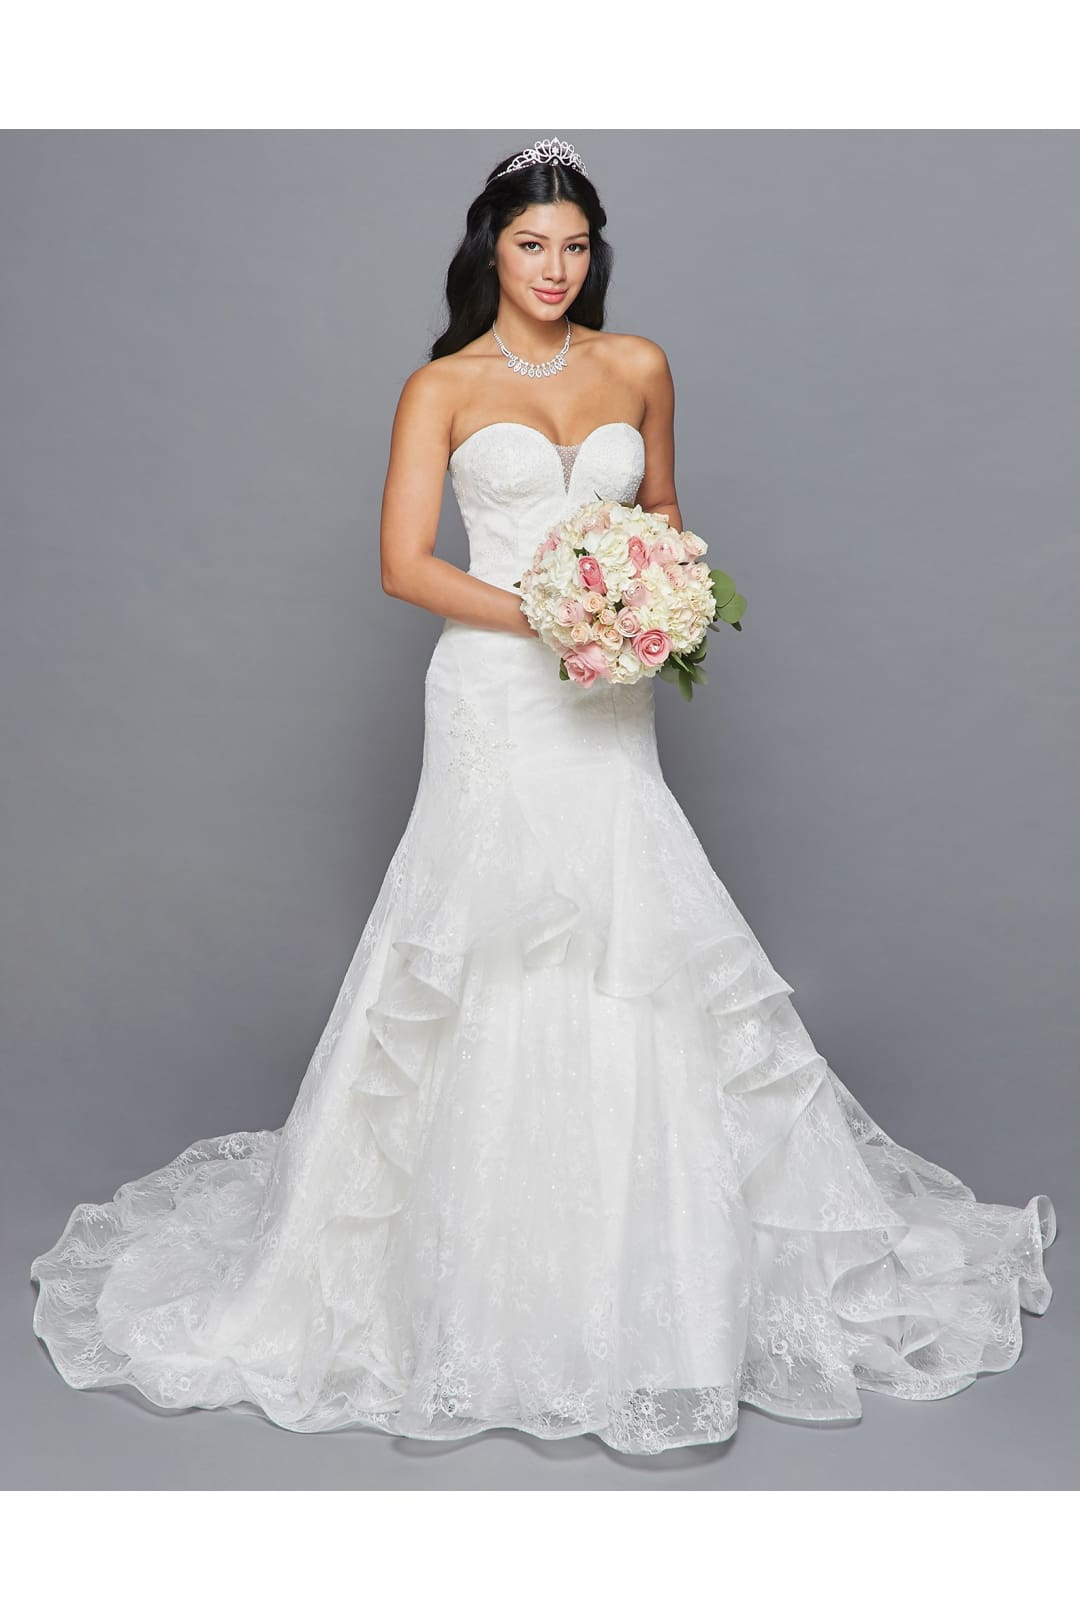 Sweetheart Wedding Dresses With Train